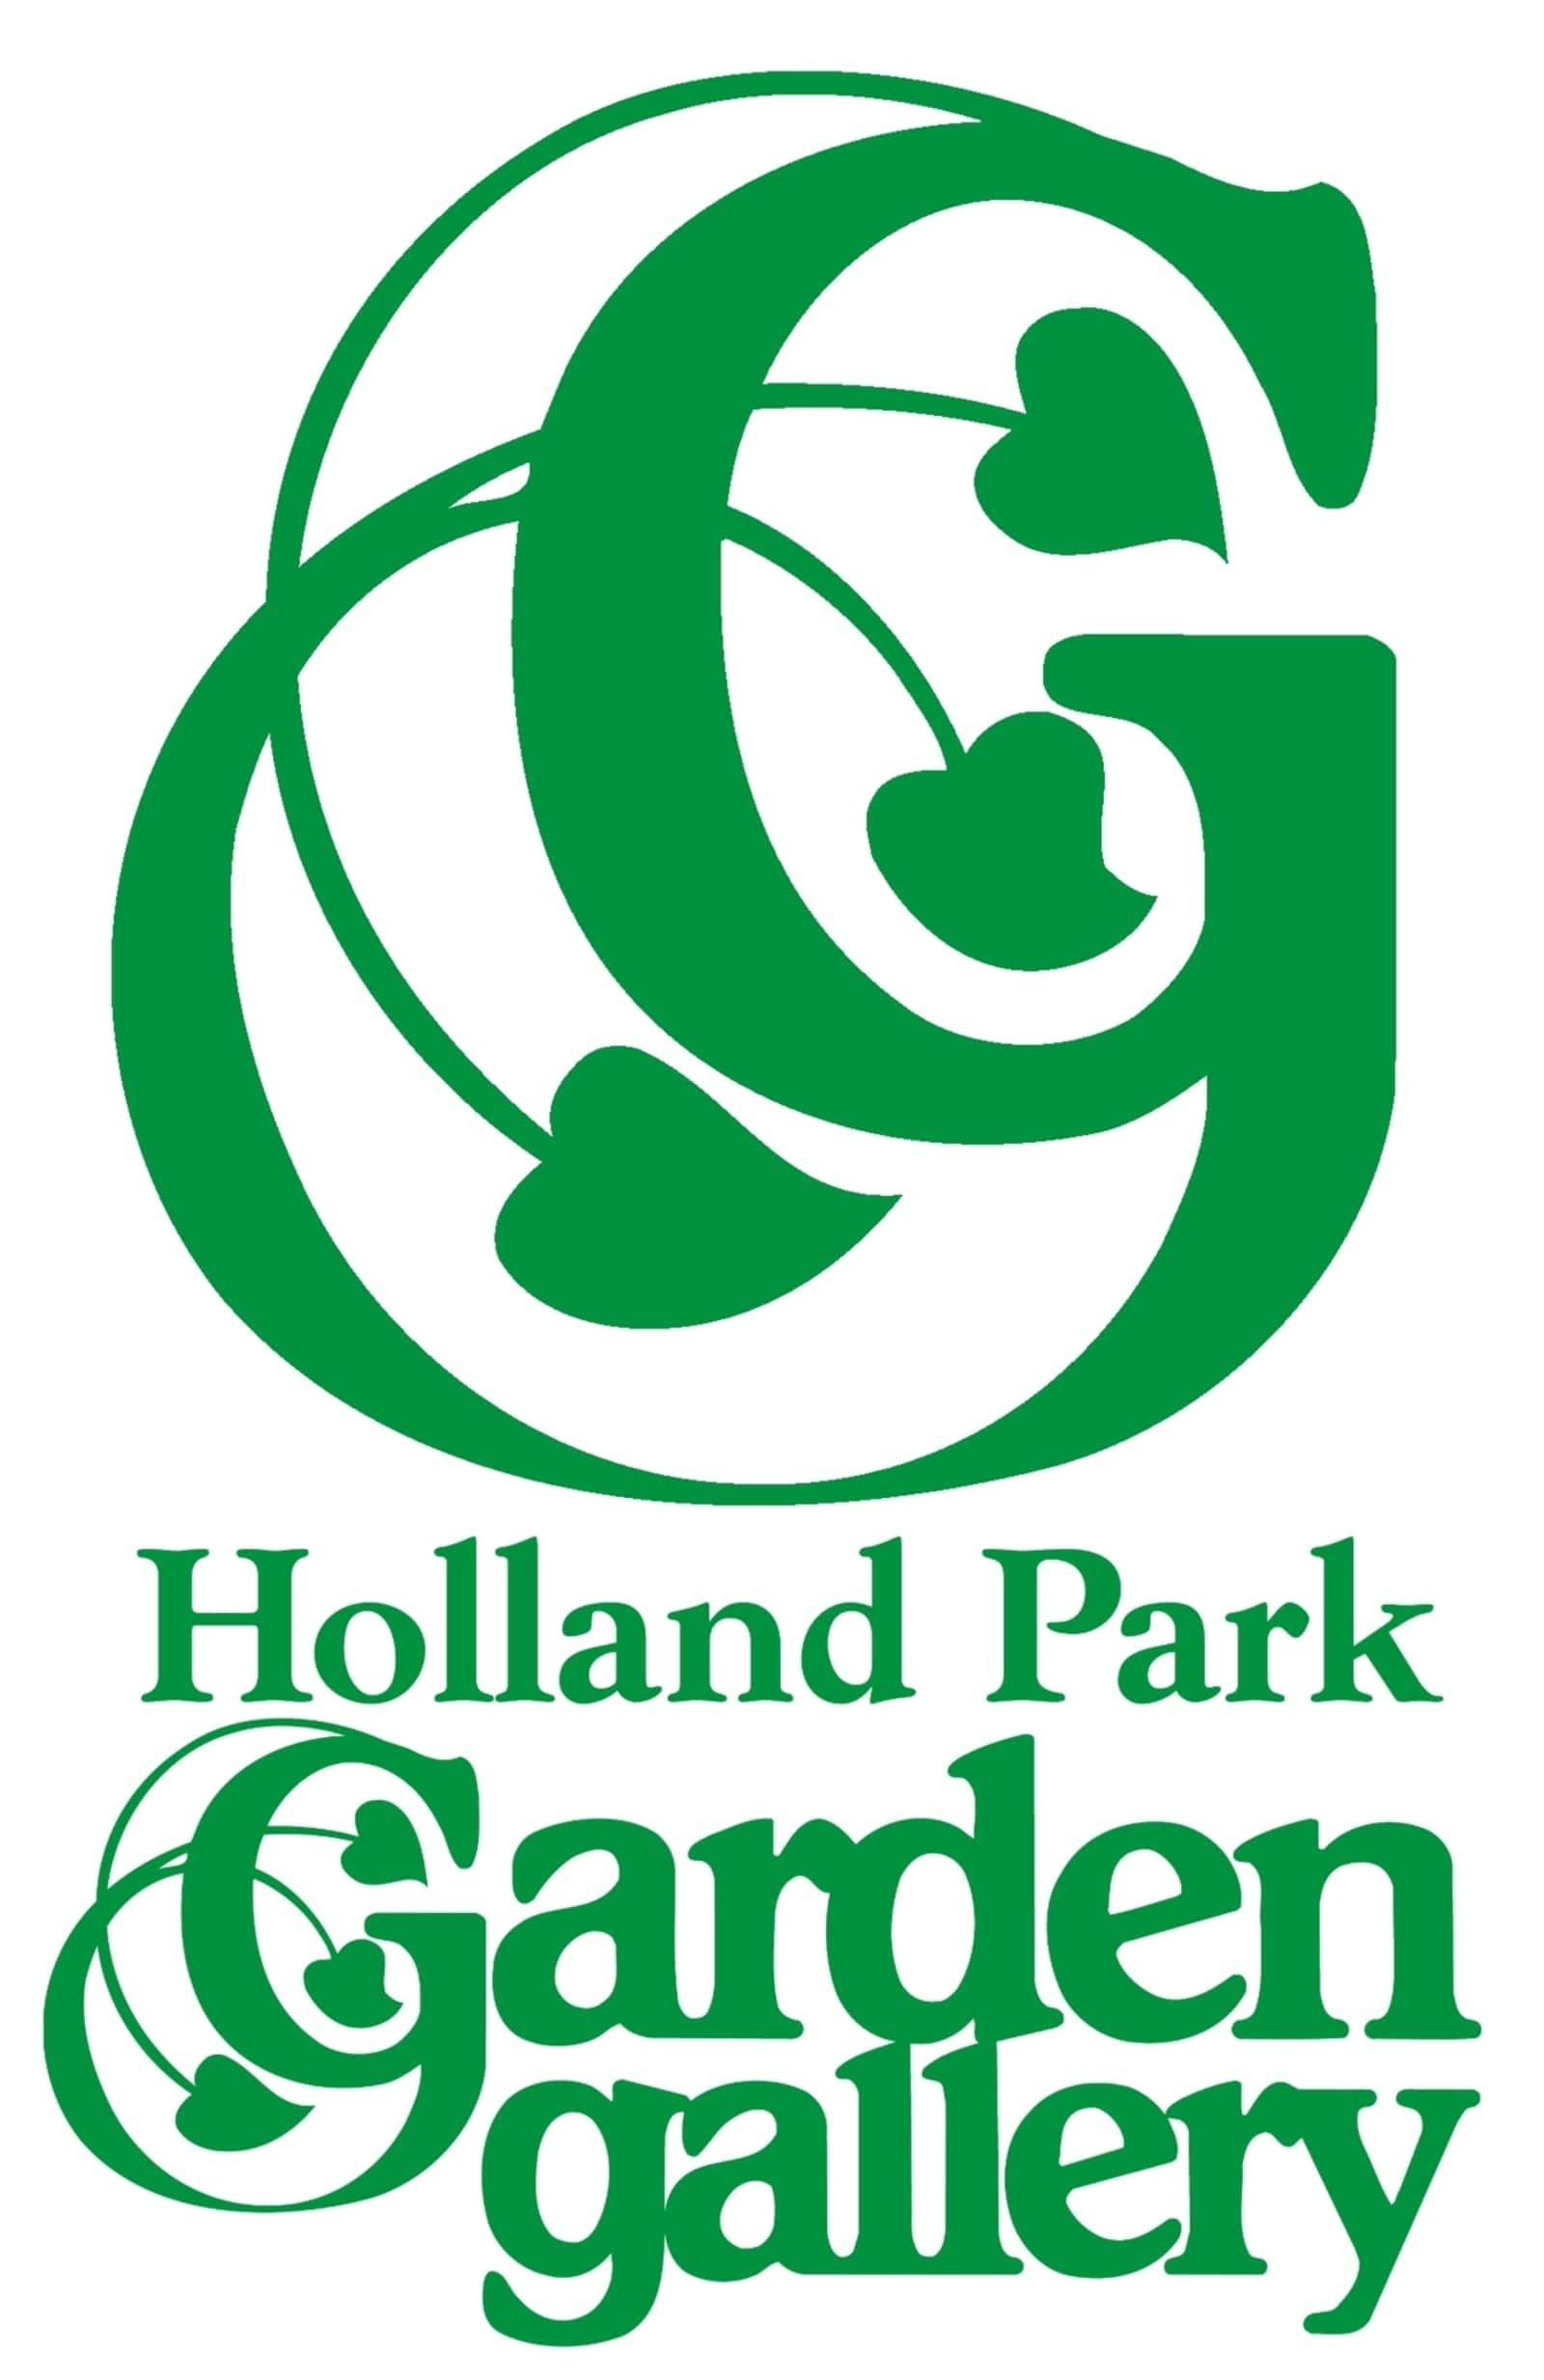 https://0901.nccdn.net/4_2/000/000/057/fca/holland-park-garden-gallery-1-1600x2466.jpg